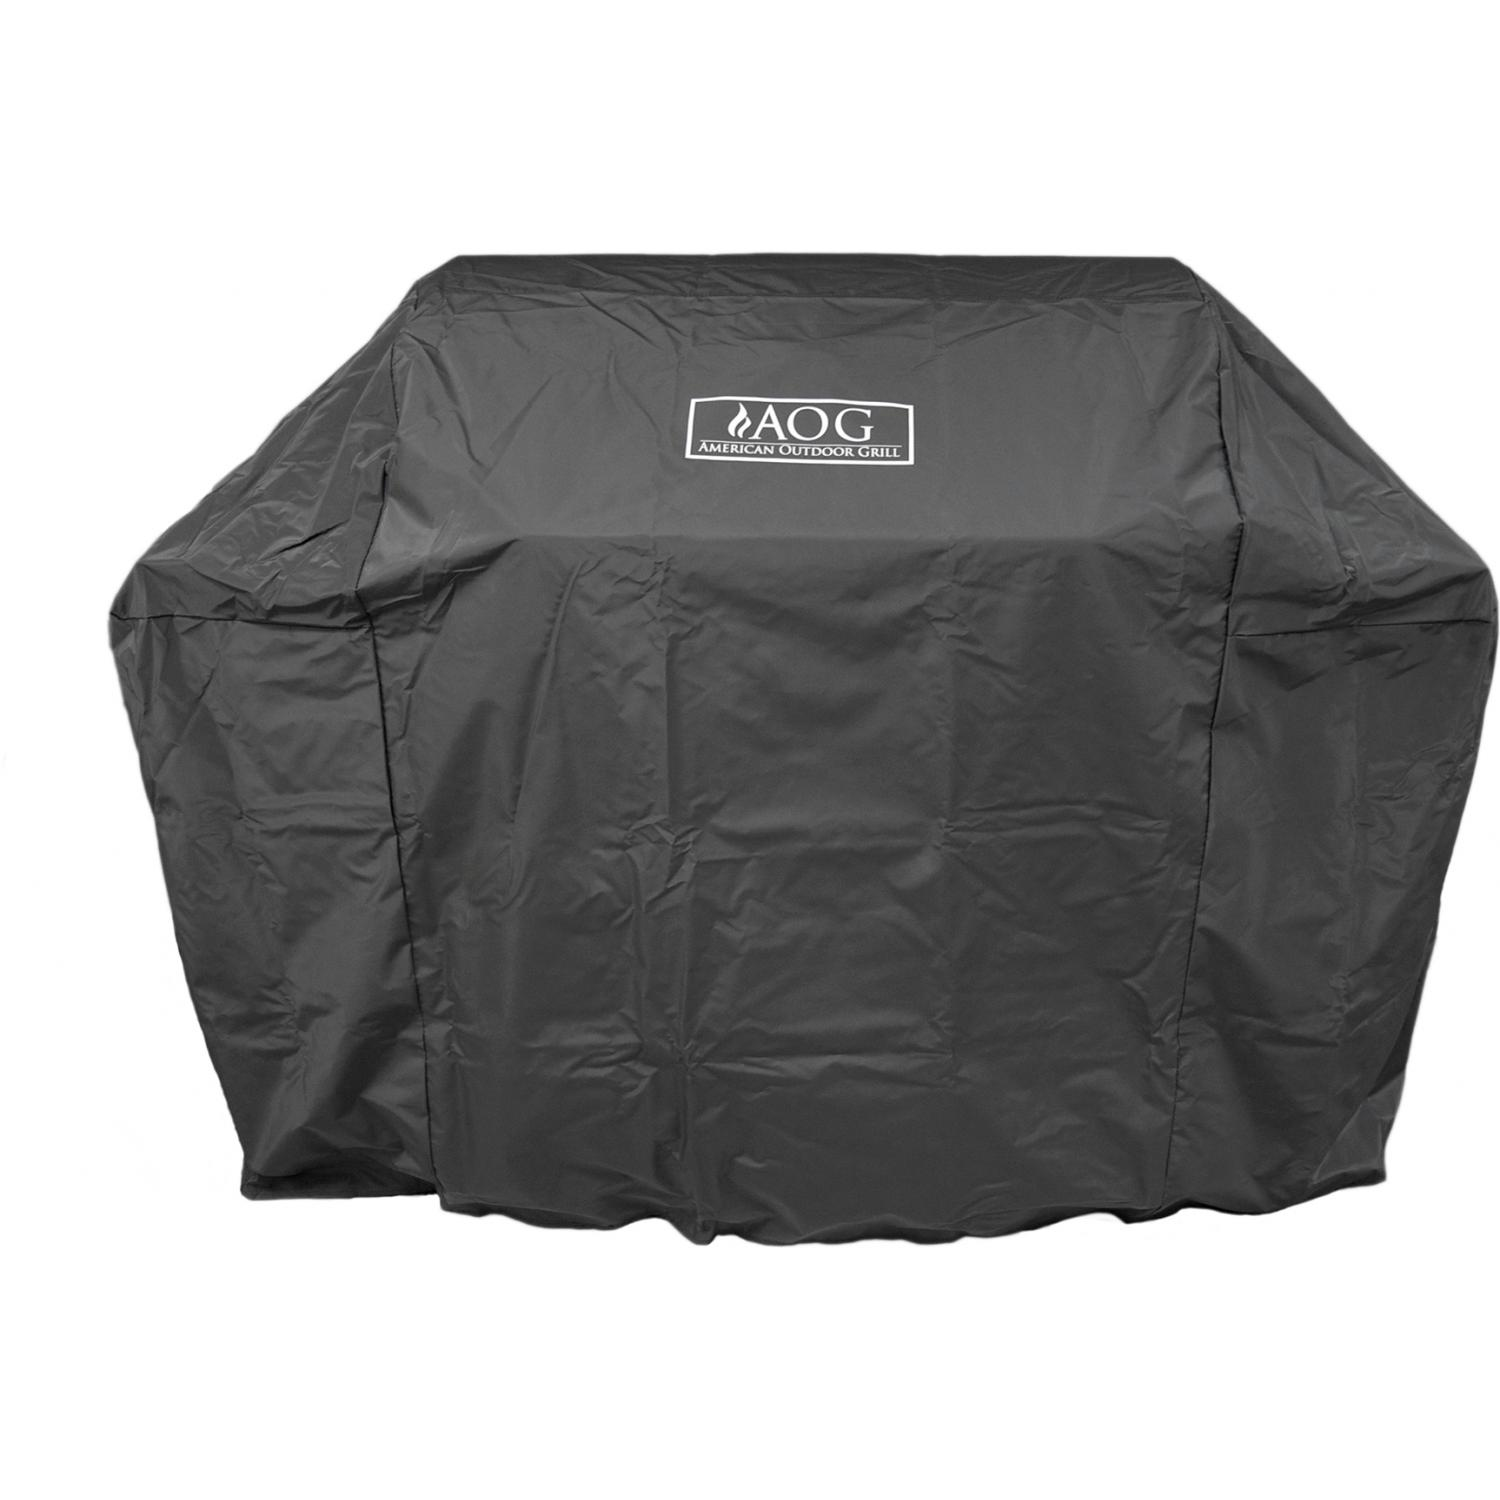 "Aog American Outdoor Grill Cover For 36"" Freestanding Gas Grills - Cc36-d"